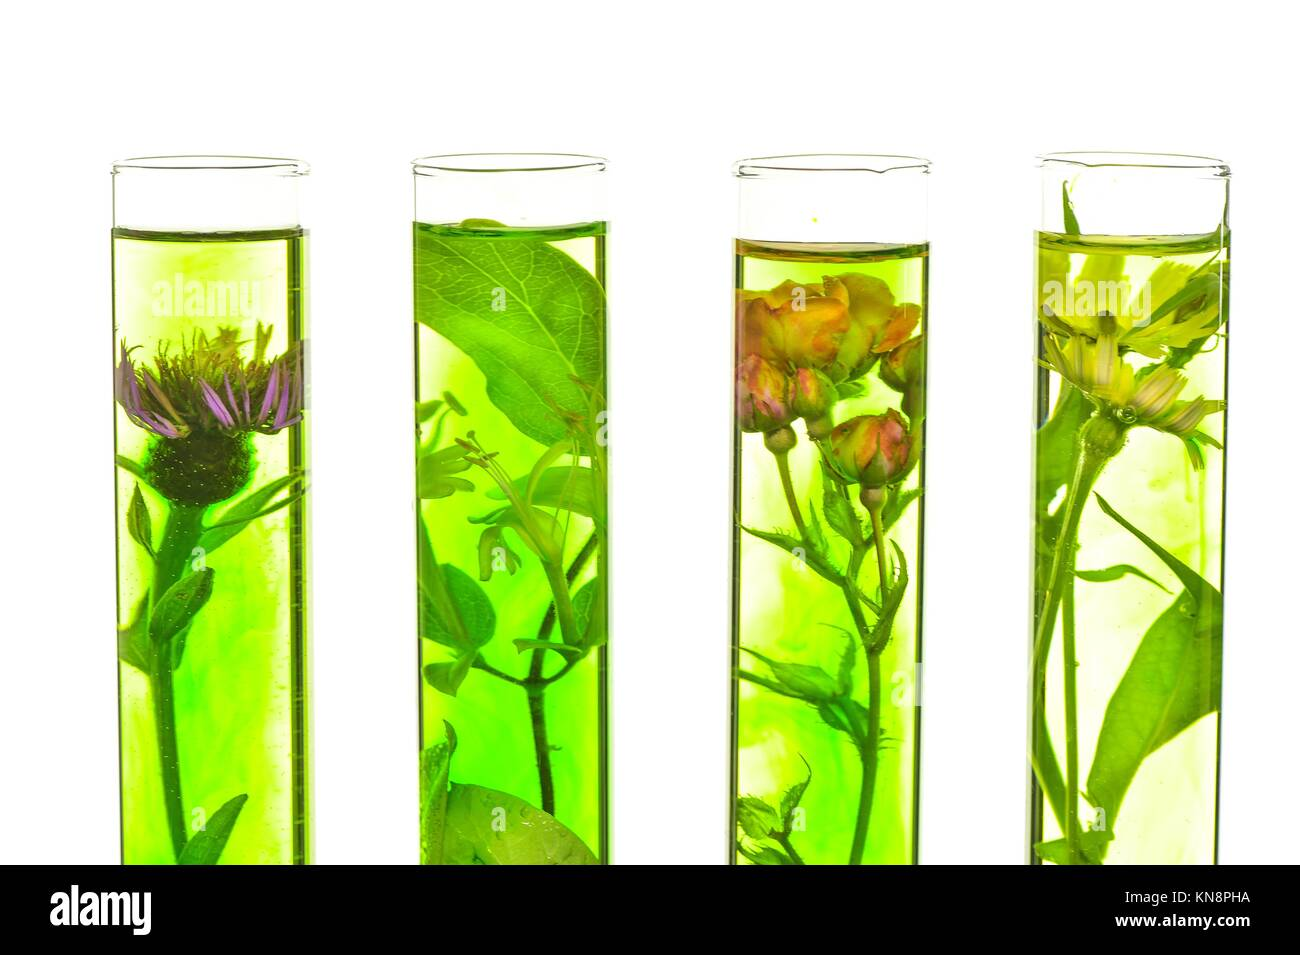 Laboratory, Pink, honeysuckle, thistle and dandelion in test tubes. - Stock Image